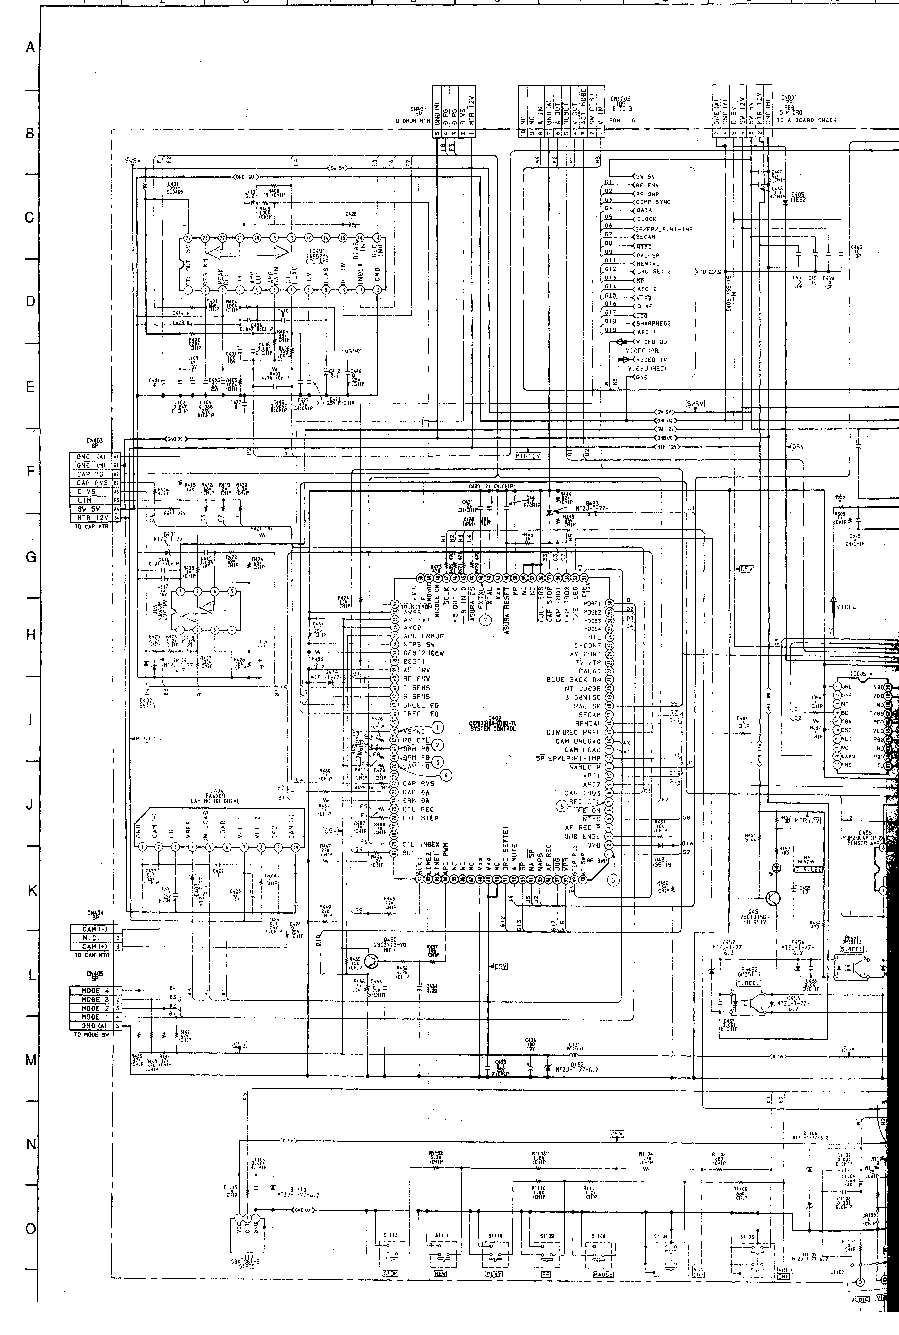 sony d2202 schematic diagram